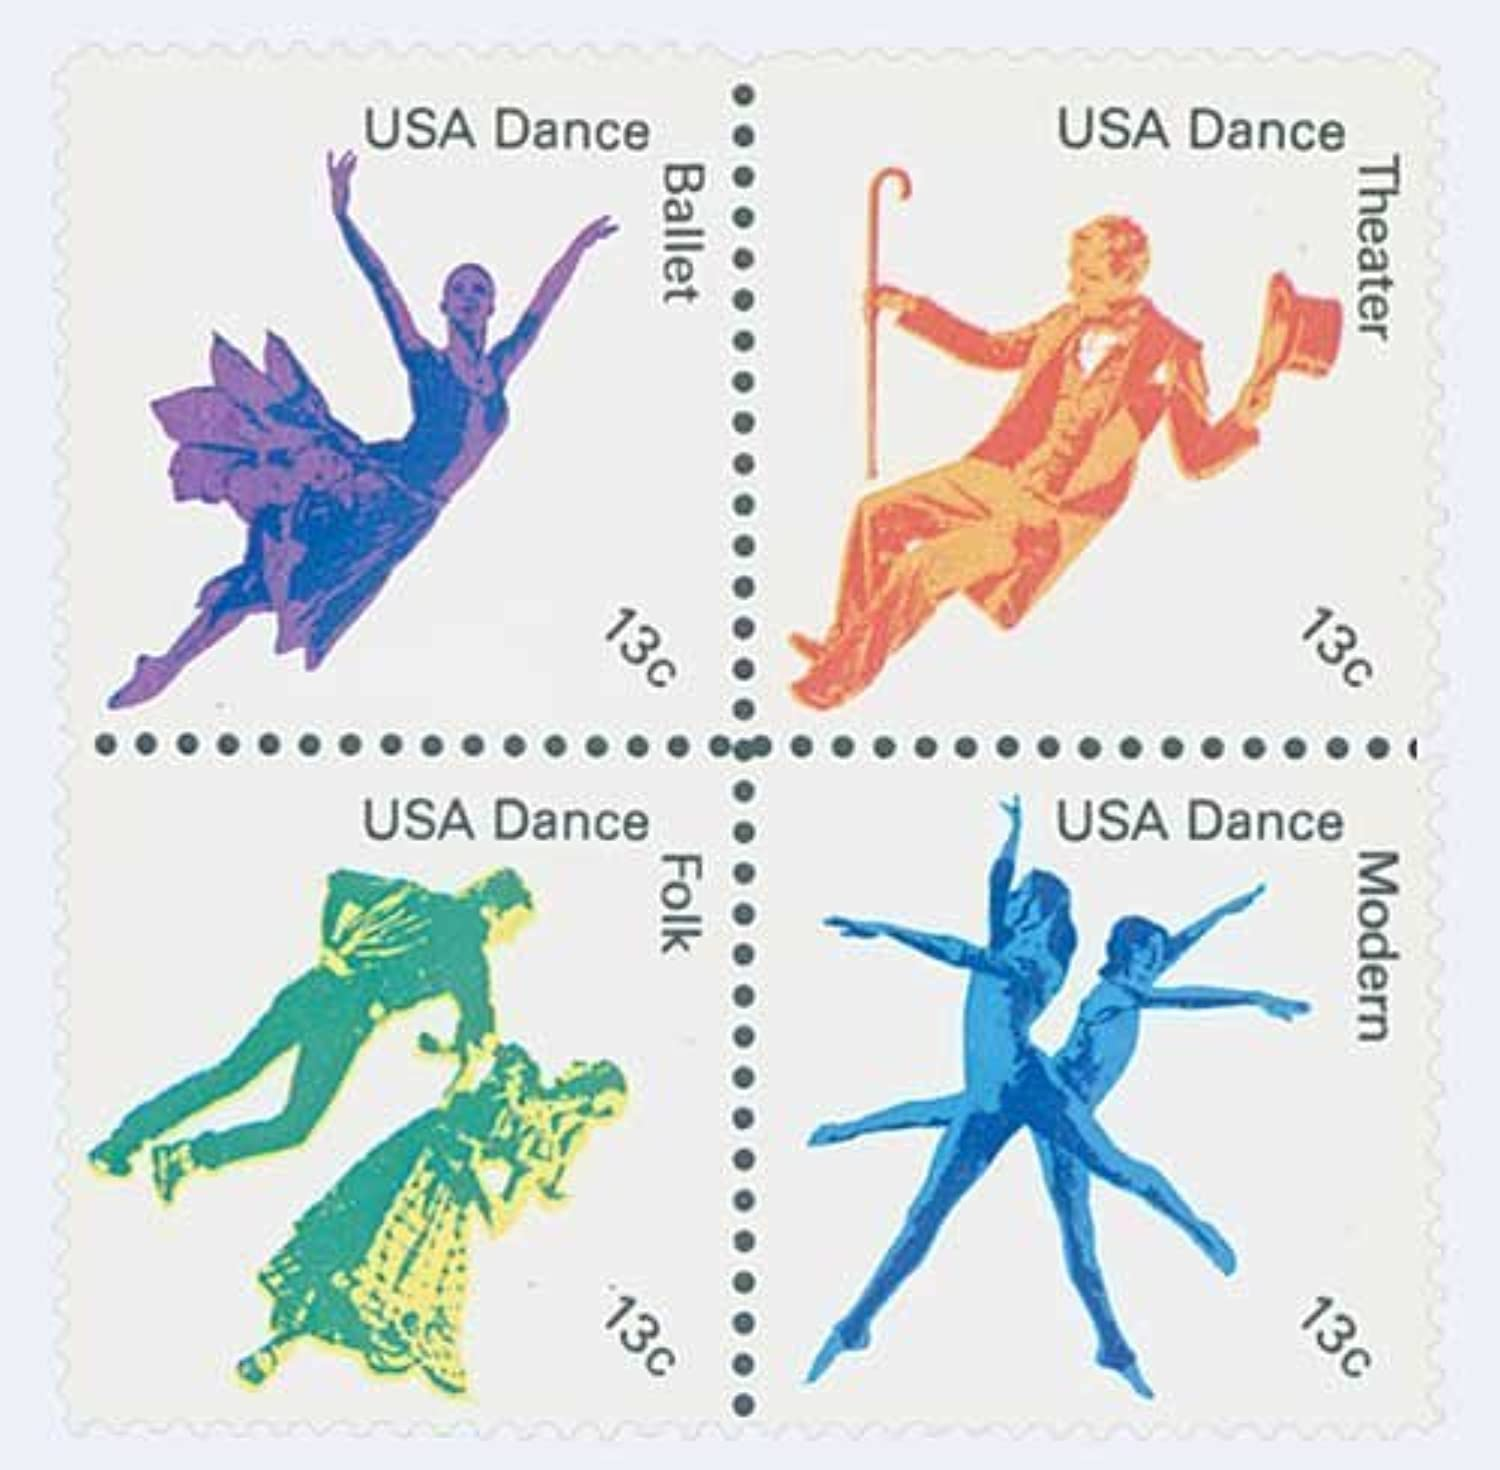 174952 American Dance U. S. Postage Stamps Full Plate Block (16) by U. S. Postage